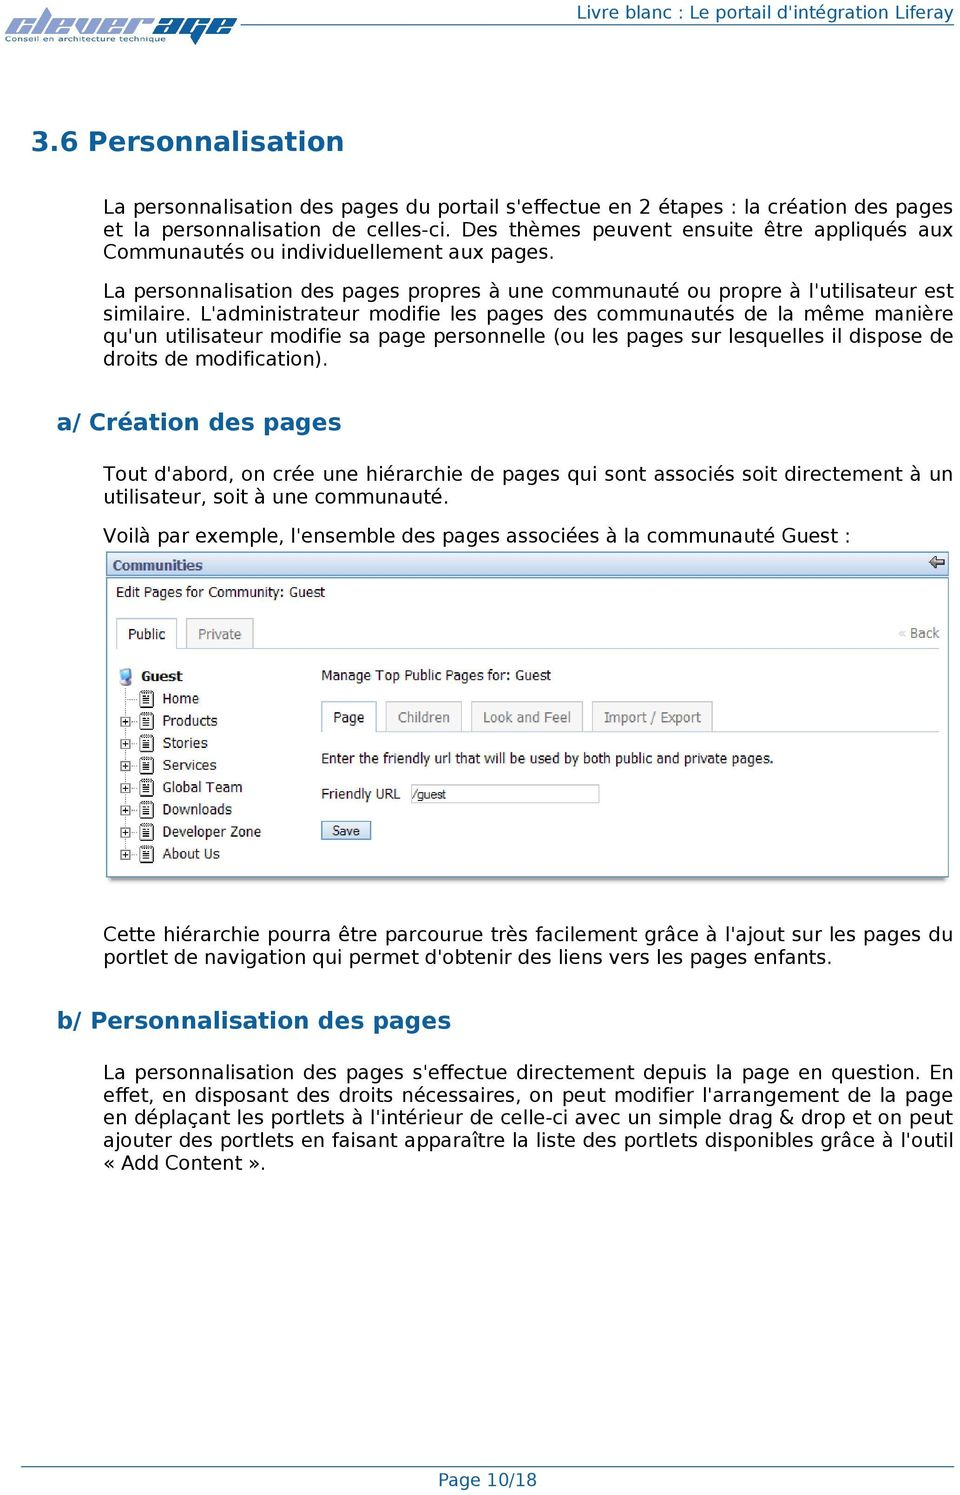 L'administrateur modifie les pages des communautés de la même manière qu'un utilisateur modifie sa page personnelle (ou les pages sur lesquelles il dispose de droits de modification).